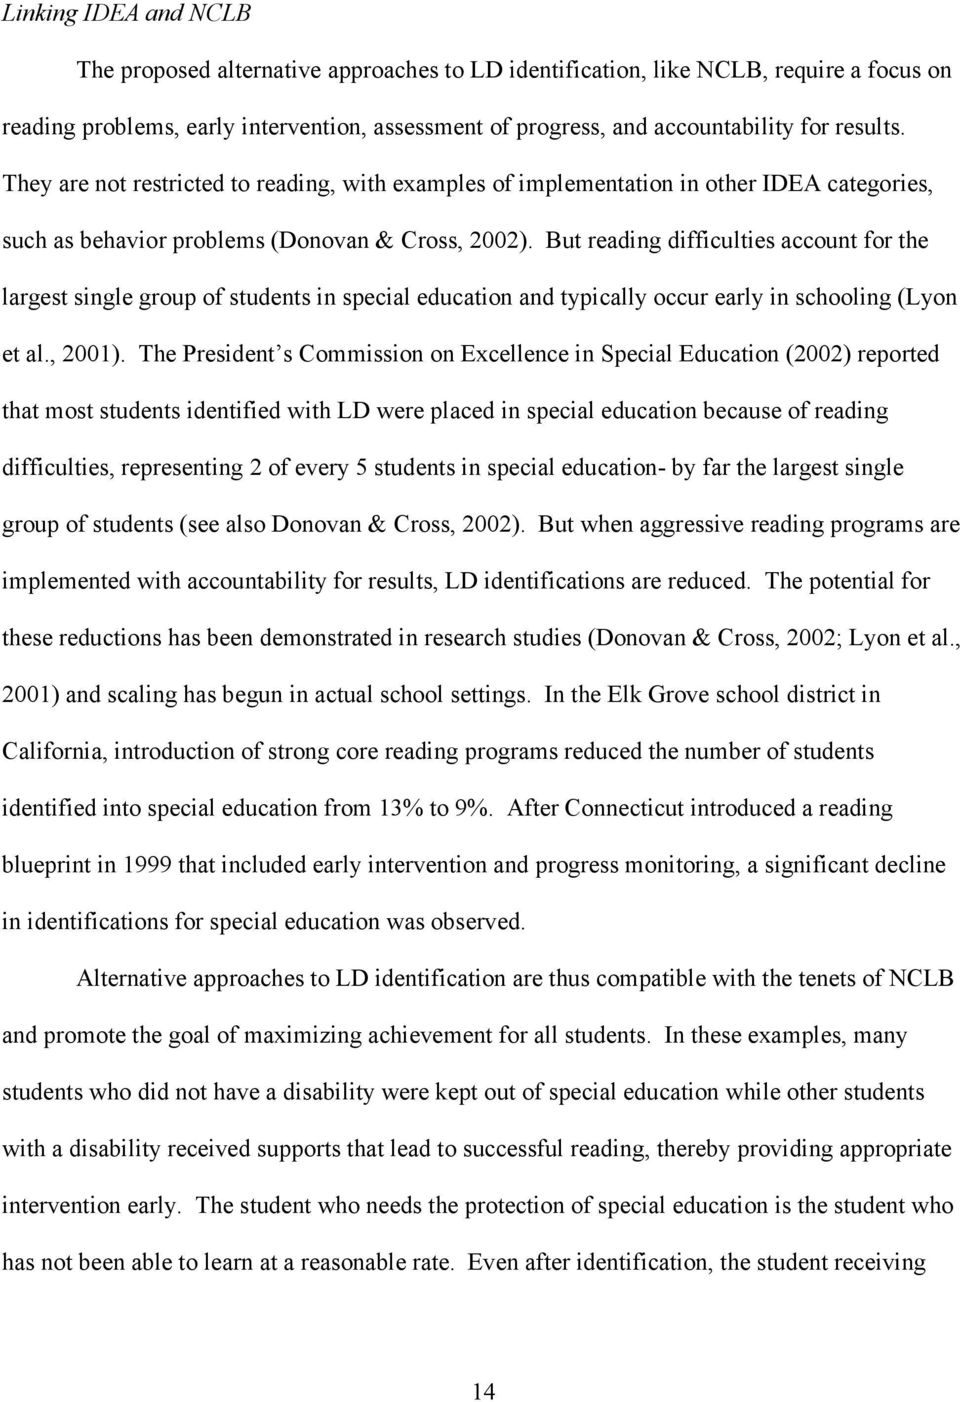 But reading difficulties account for the largest single group of students in special education and typically occur early in schooling (Lyon et al., 2001).